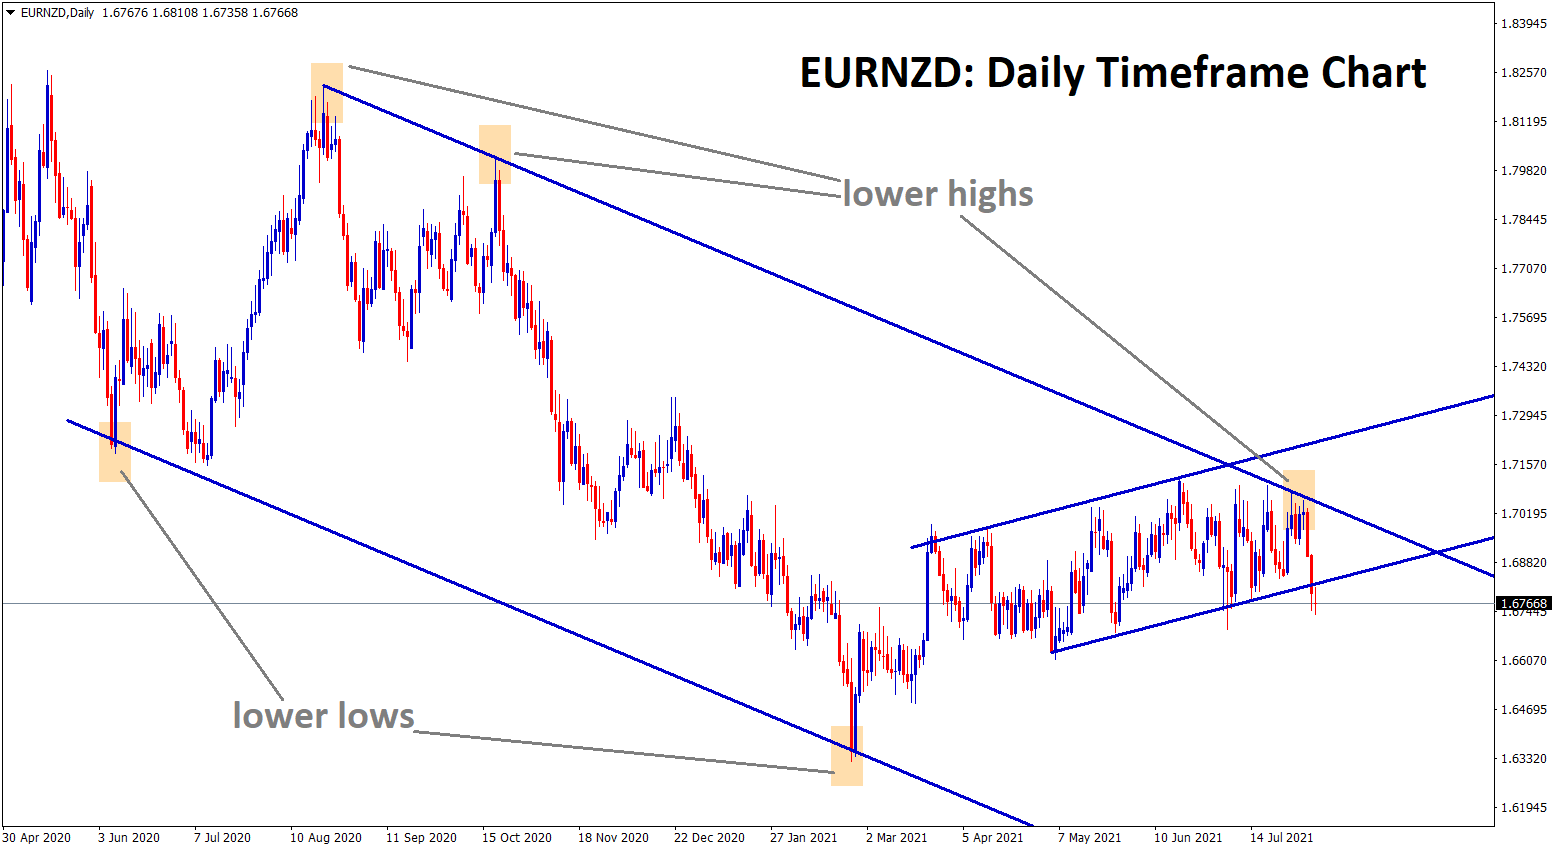 EURNZD starts to fall from the lower high zone of the descending channel